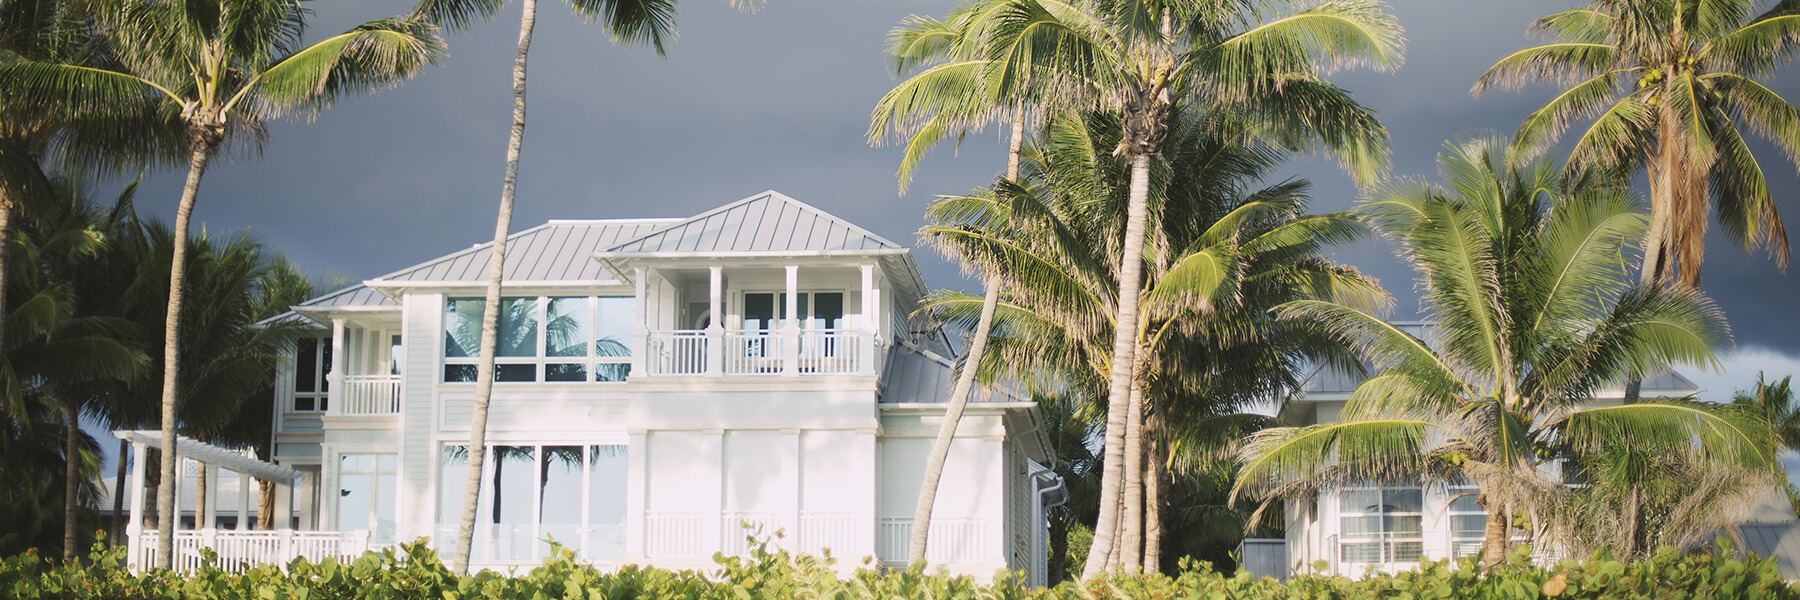 Do's and Don'ts of Building in Hurricane-Prone Areas